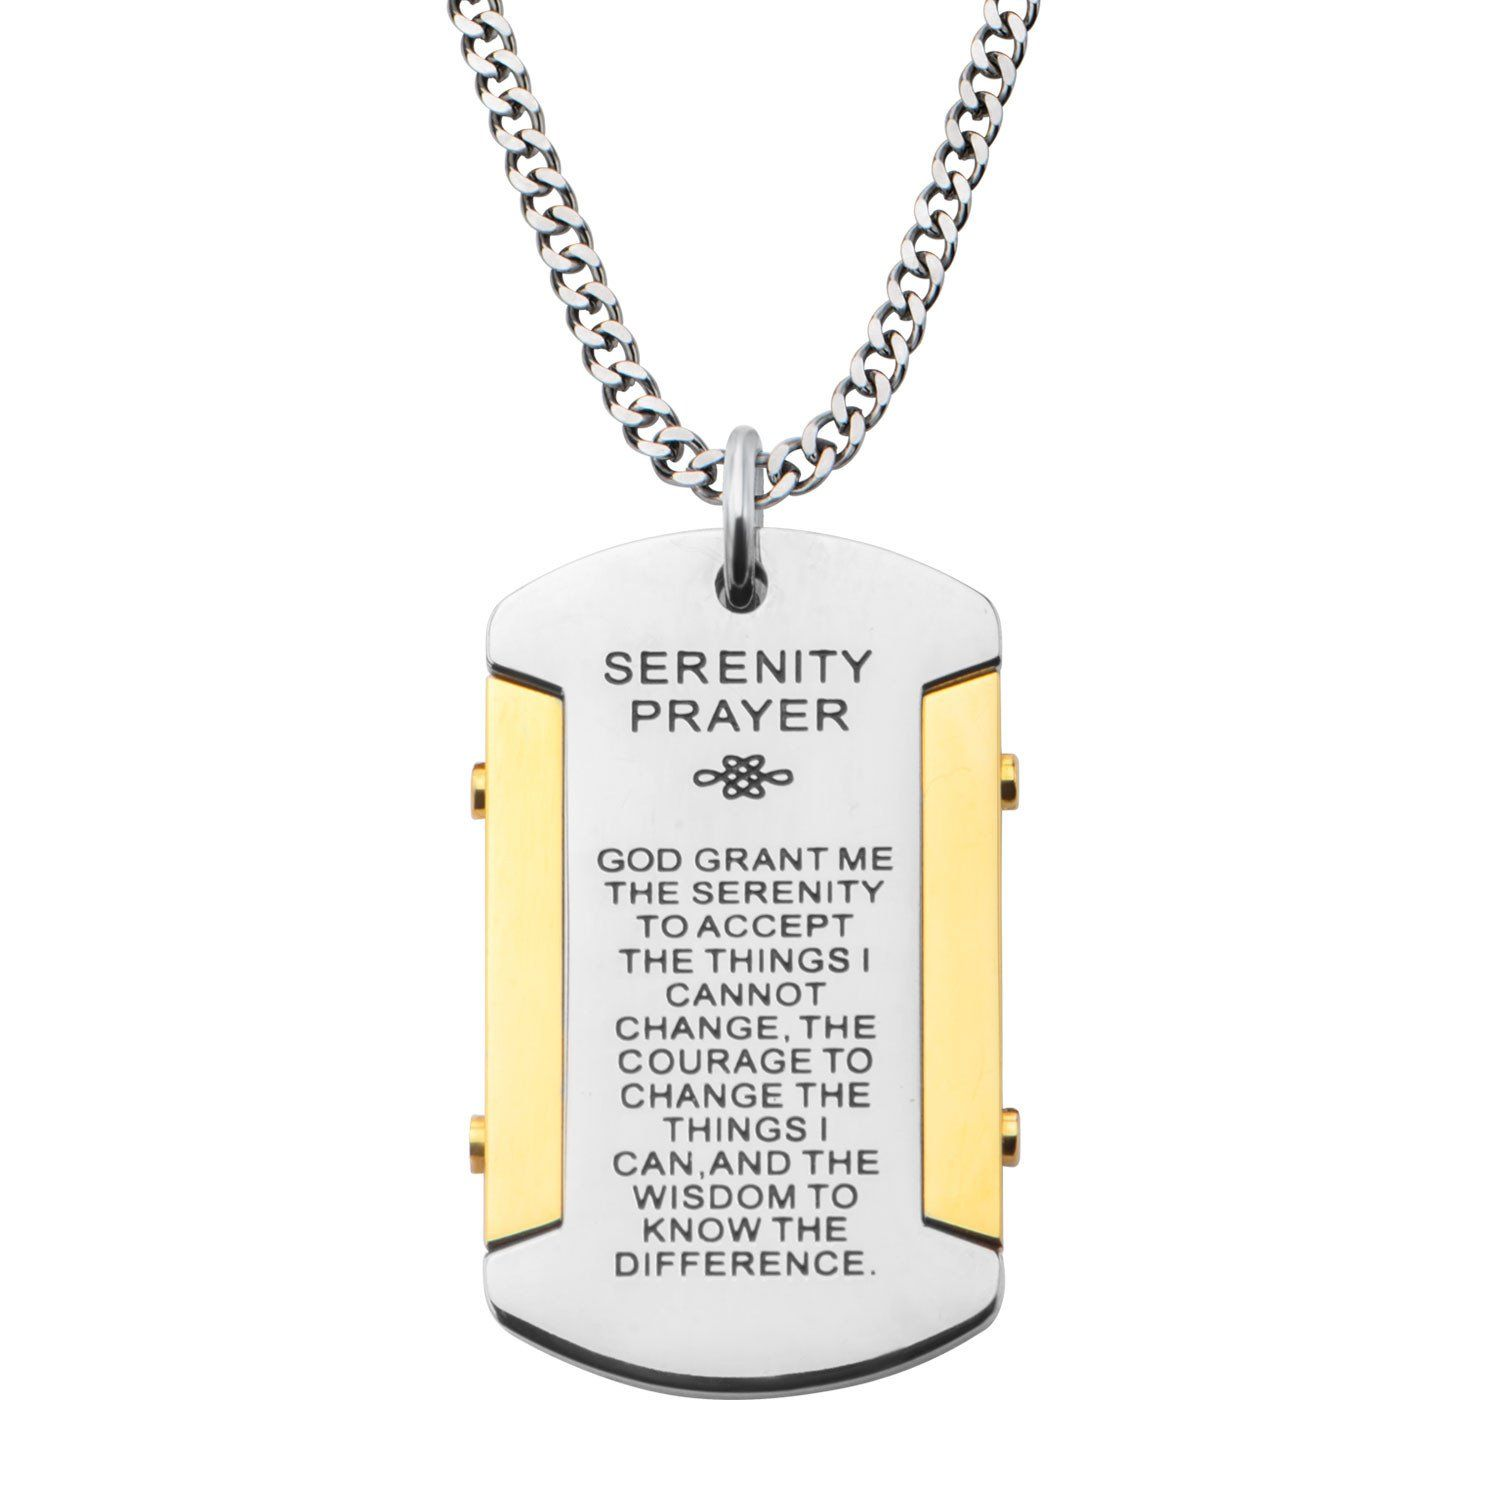 hope prayer through now for aa anonymous sterling gift wife cubic s silver necklace serenity gifts and zirconia women products jewelry top nano strength alcoholics